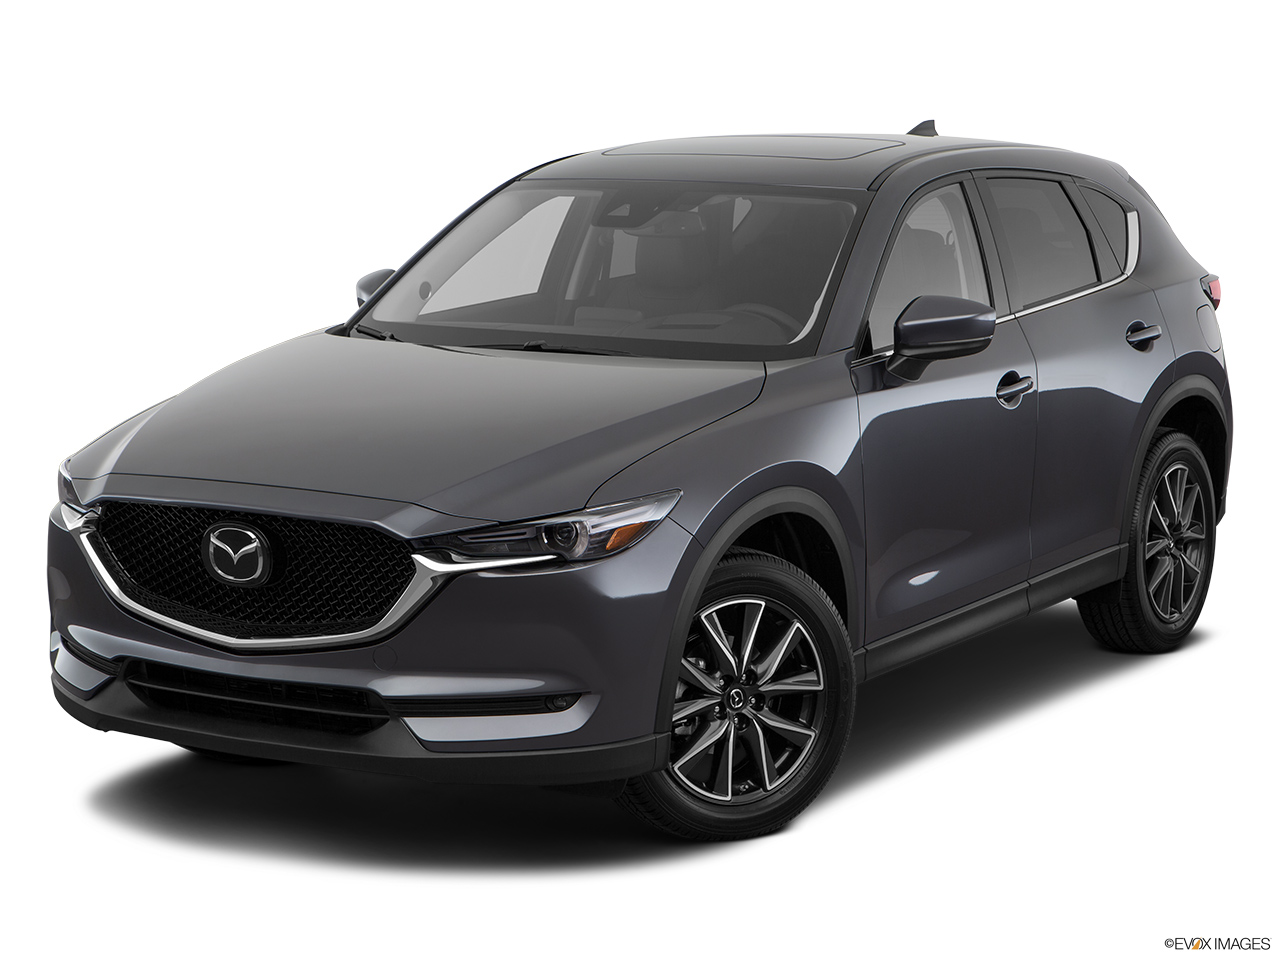 2018 Mazda Cx 5 Prices In Uae Gulf Specs Amp Reviews For